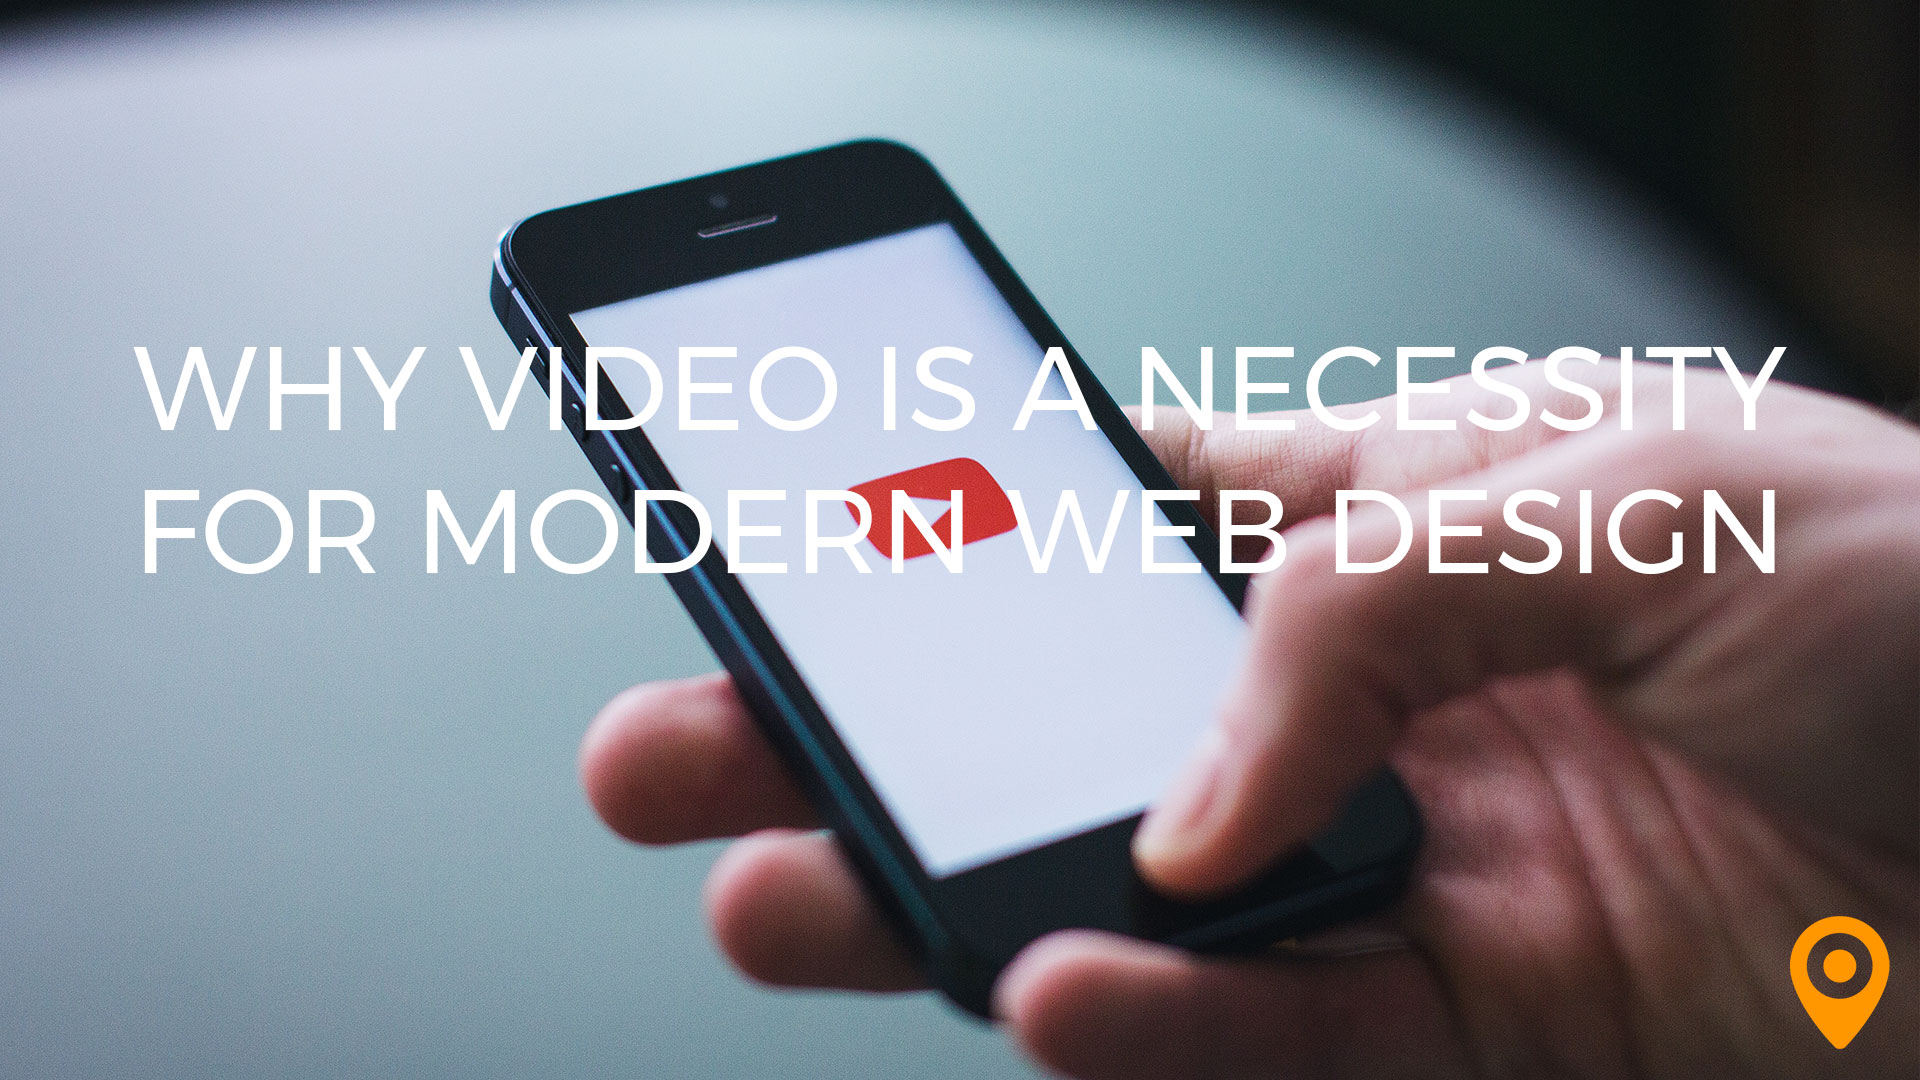 Why Video Is a Necessity for Modern Web Design | UpCity